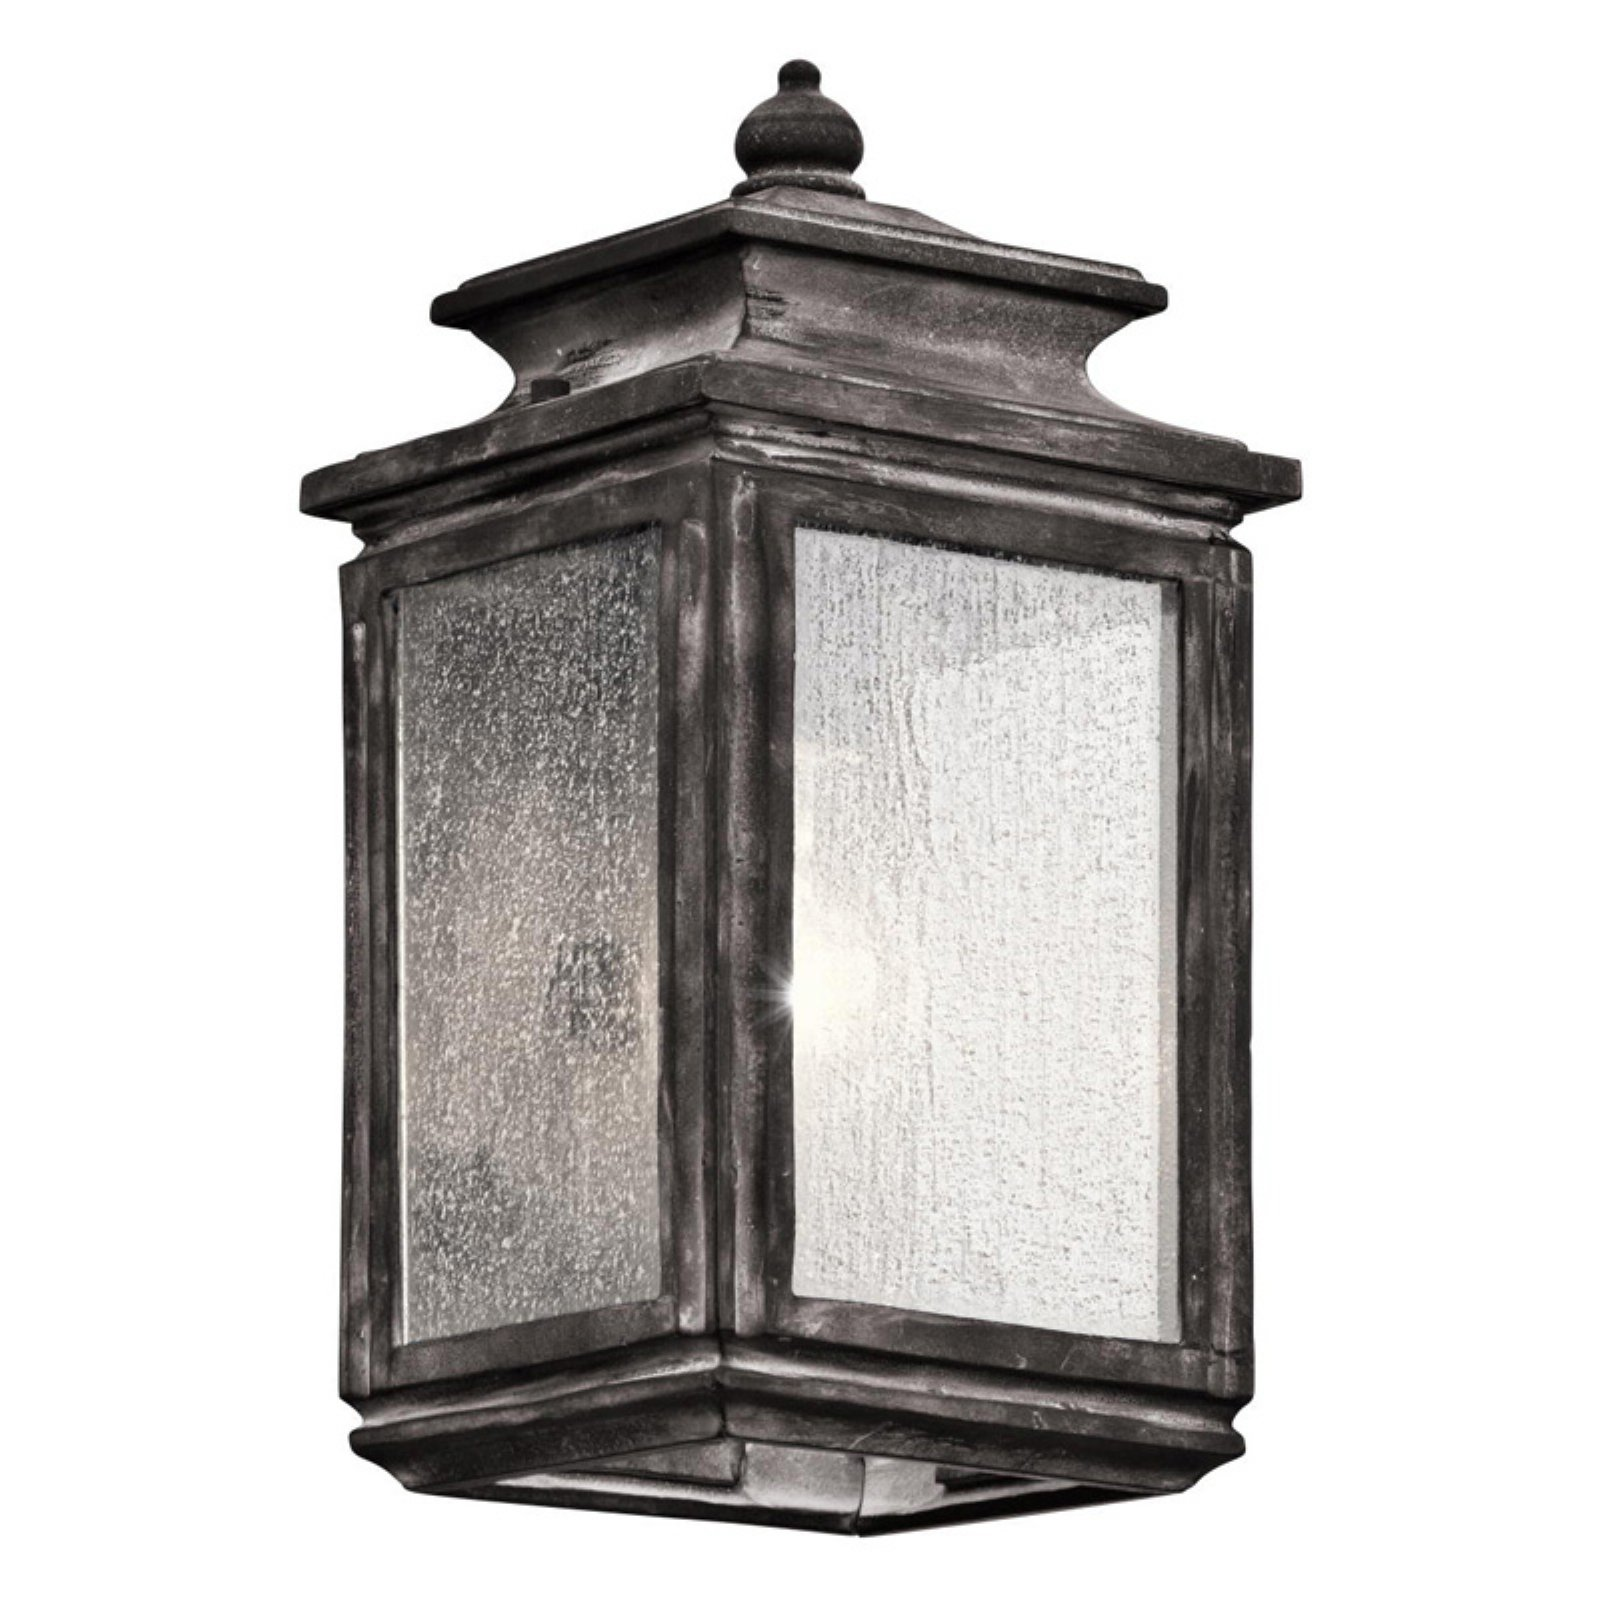 Kichler Wiscombe Park 49501 Outdoor Wall Light